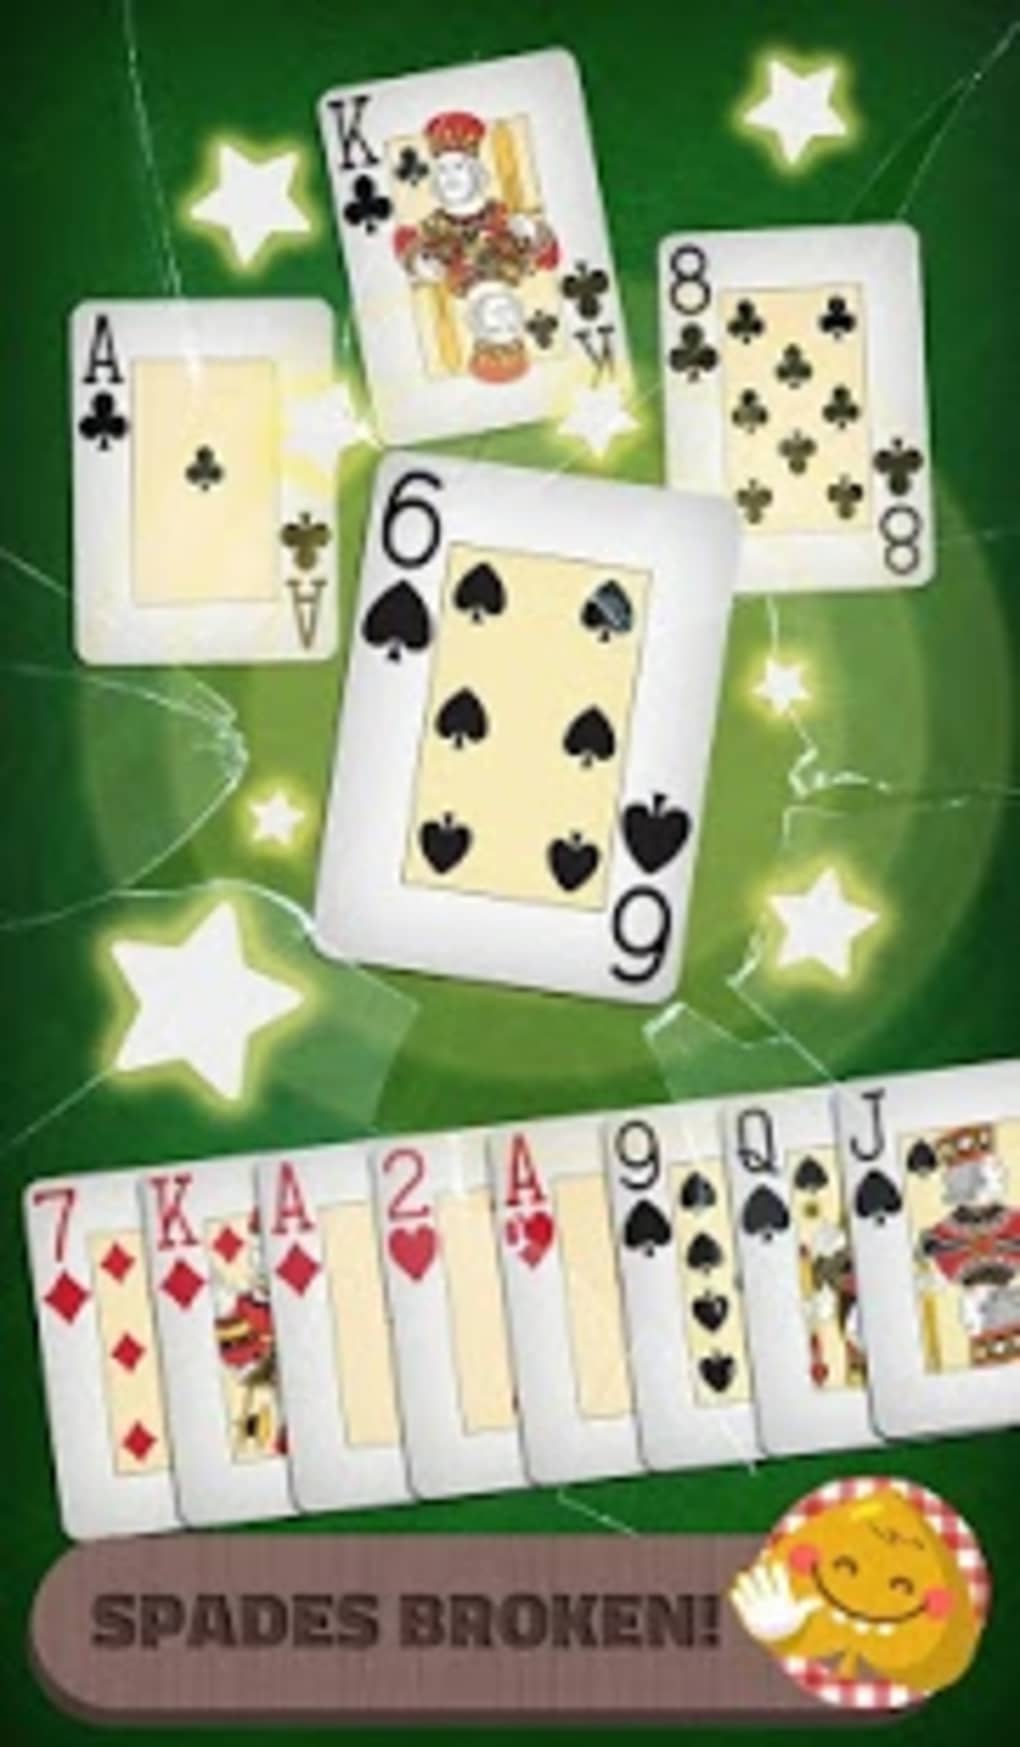 Best casino sites no wagering requirements